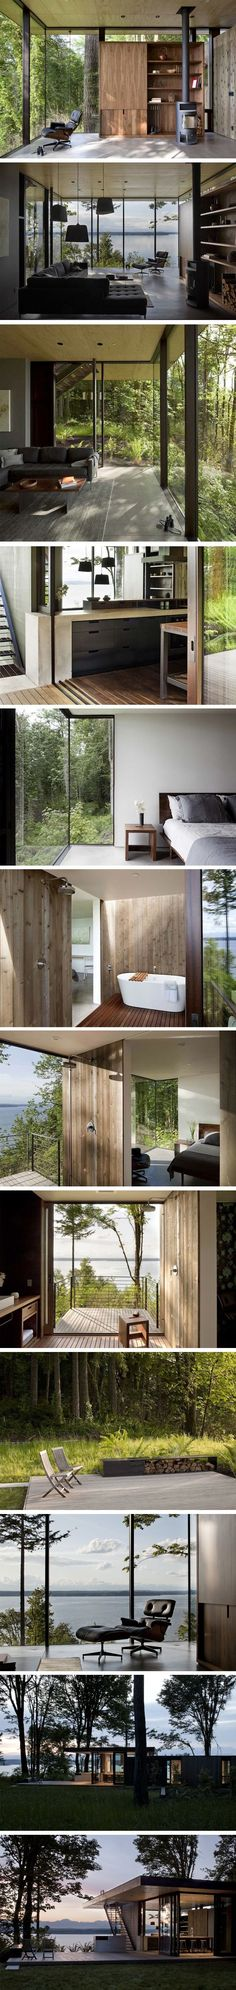 Case Inlet Retreat par MW/Works Architecture+Design